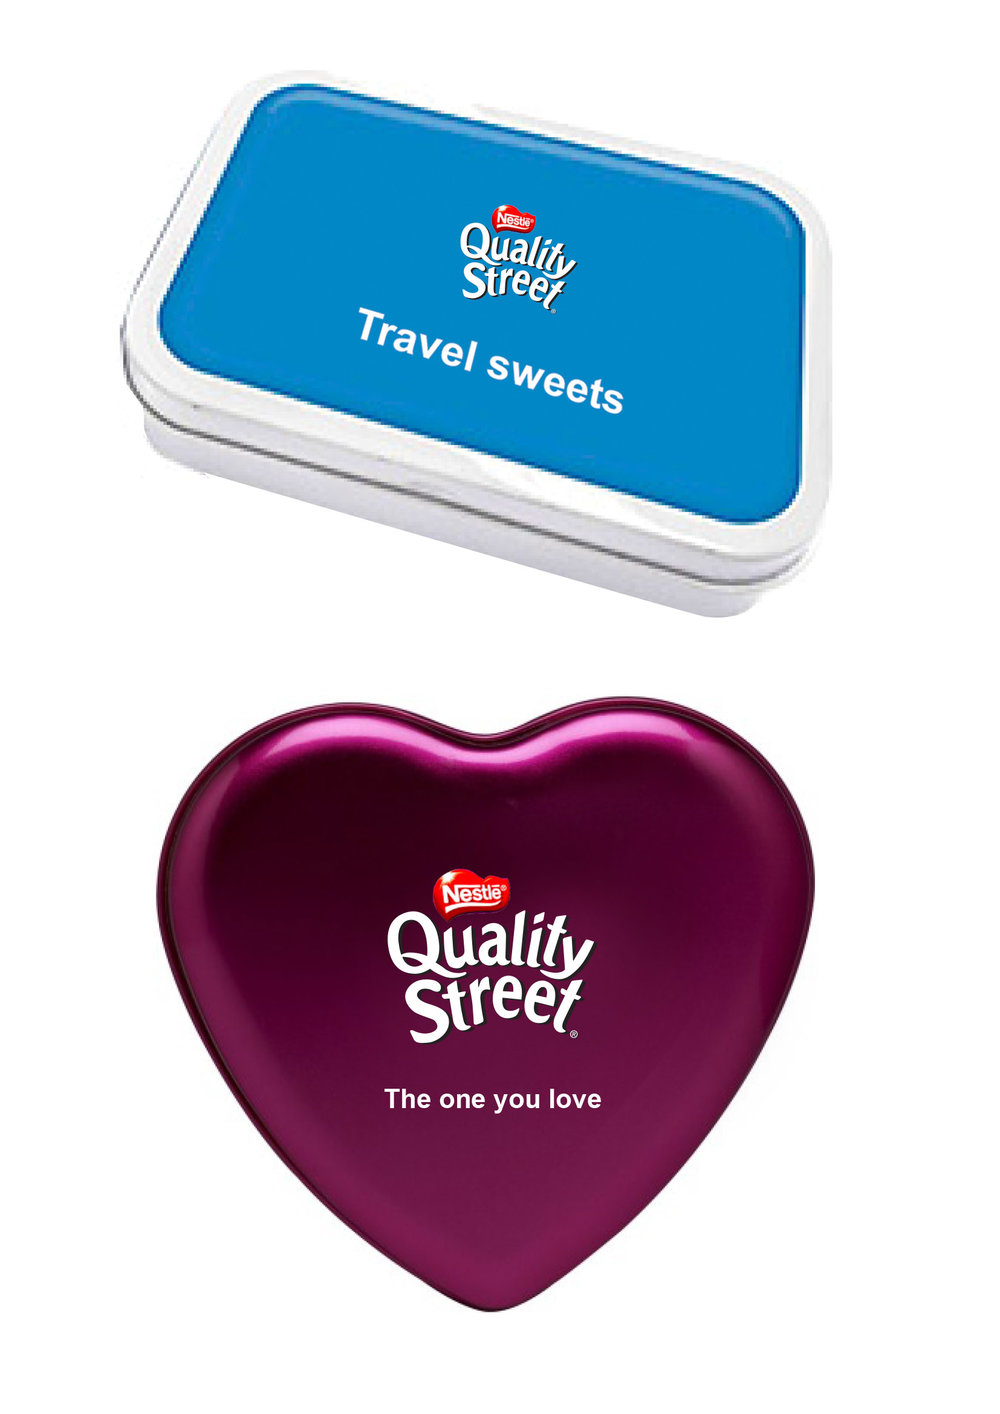 Limited edition packaging could reflect each of these events. Like a heart-shaped box filled with your loved one's favorite for Valentine's day, or a travel sweet box filled with toffee pennies.